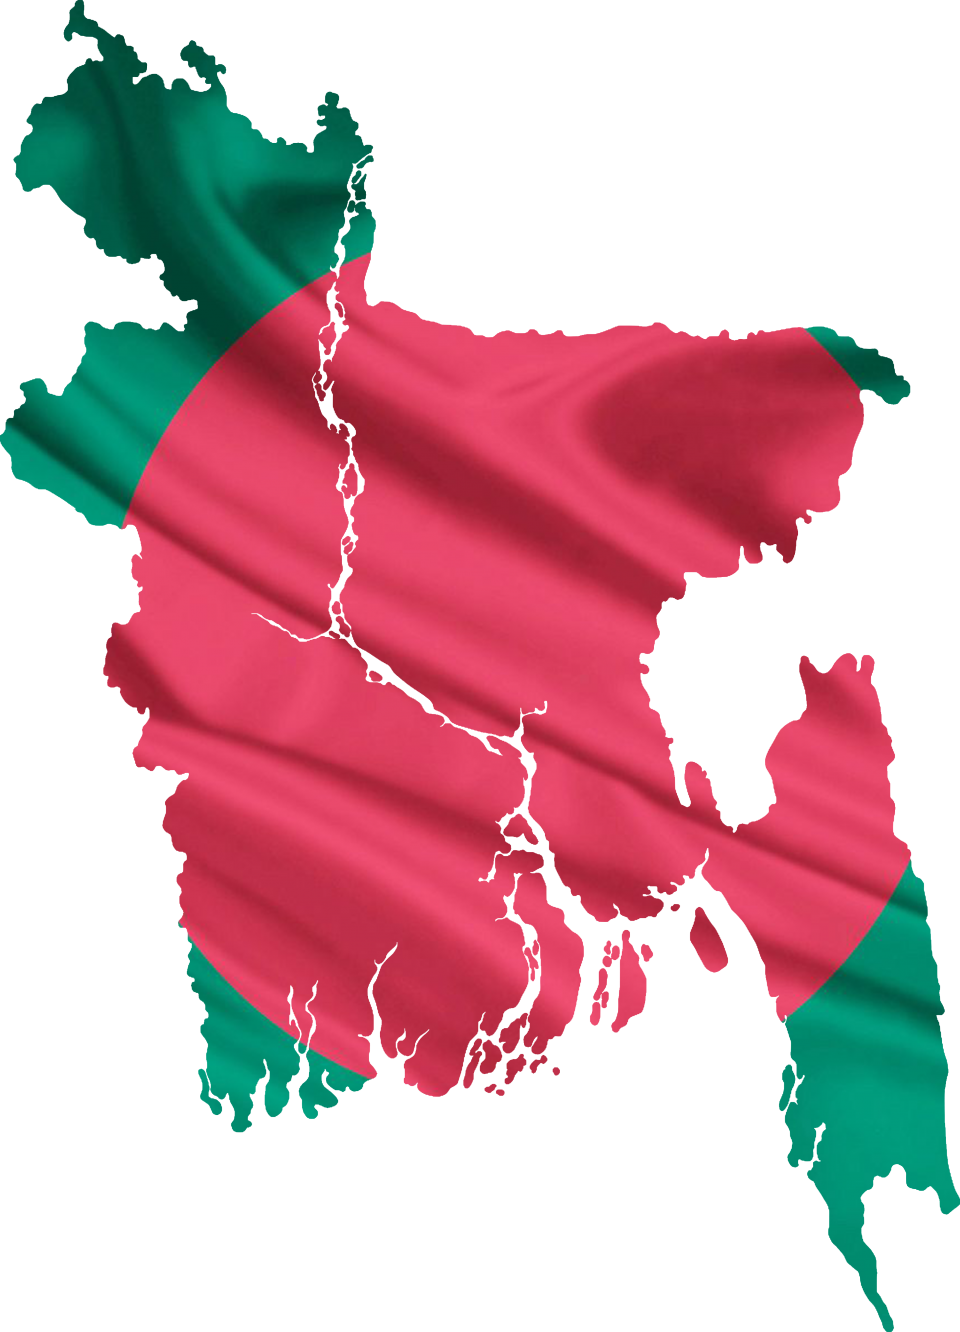 Bangladesh flag & map PNG Image